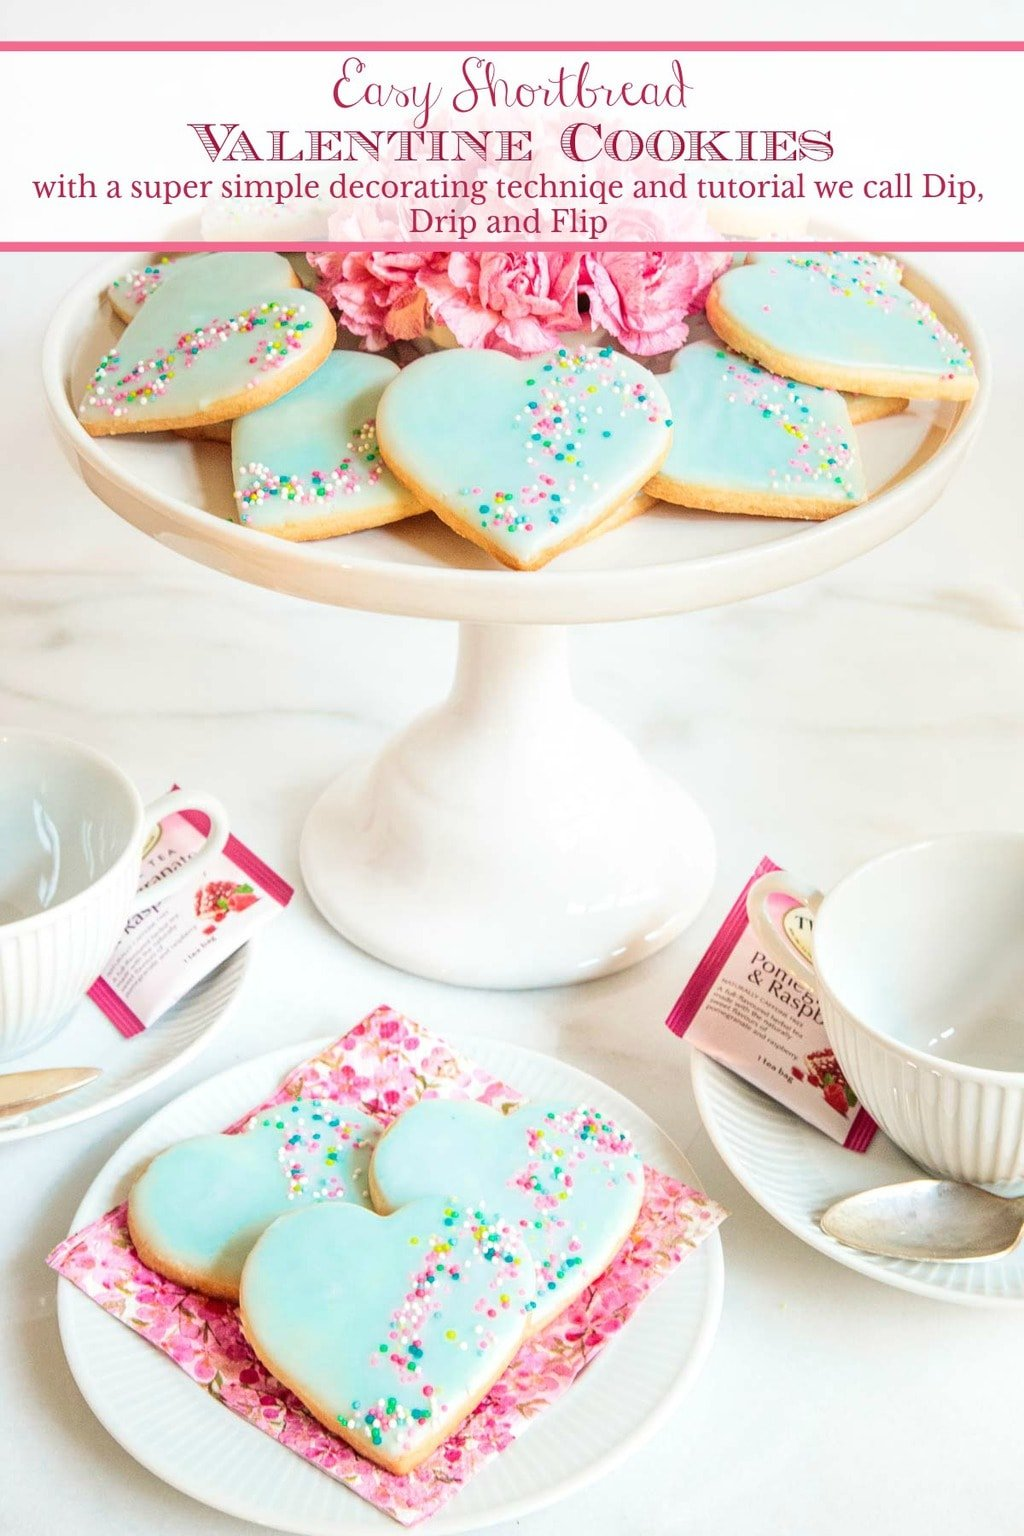 The beauty of theseeasy Shortbread Valentine Cookies is not skin deep! They\'re super pretty and also sweet, buttery and melt-in-your-mouth delicious! #valentinecookies, #easyvalentinecookies, #easycookiedeccorating, #dipdripandflip